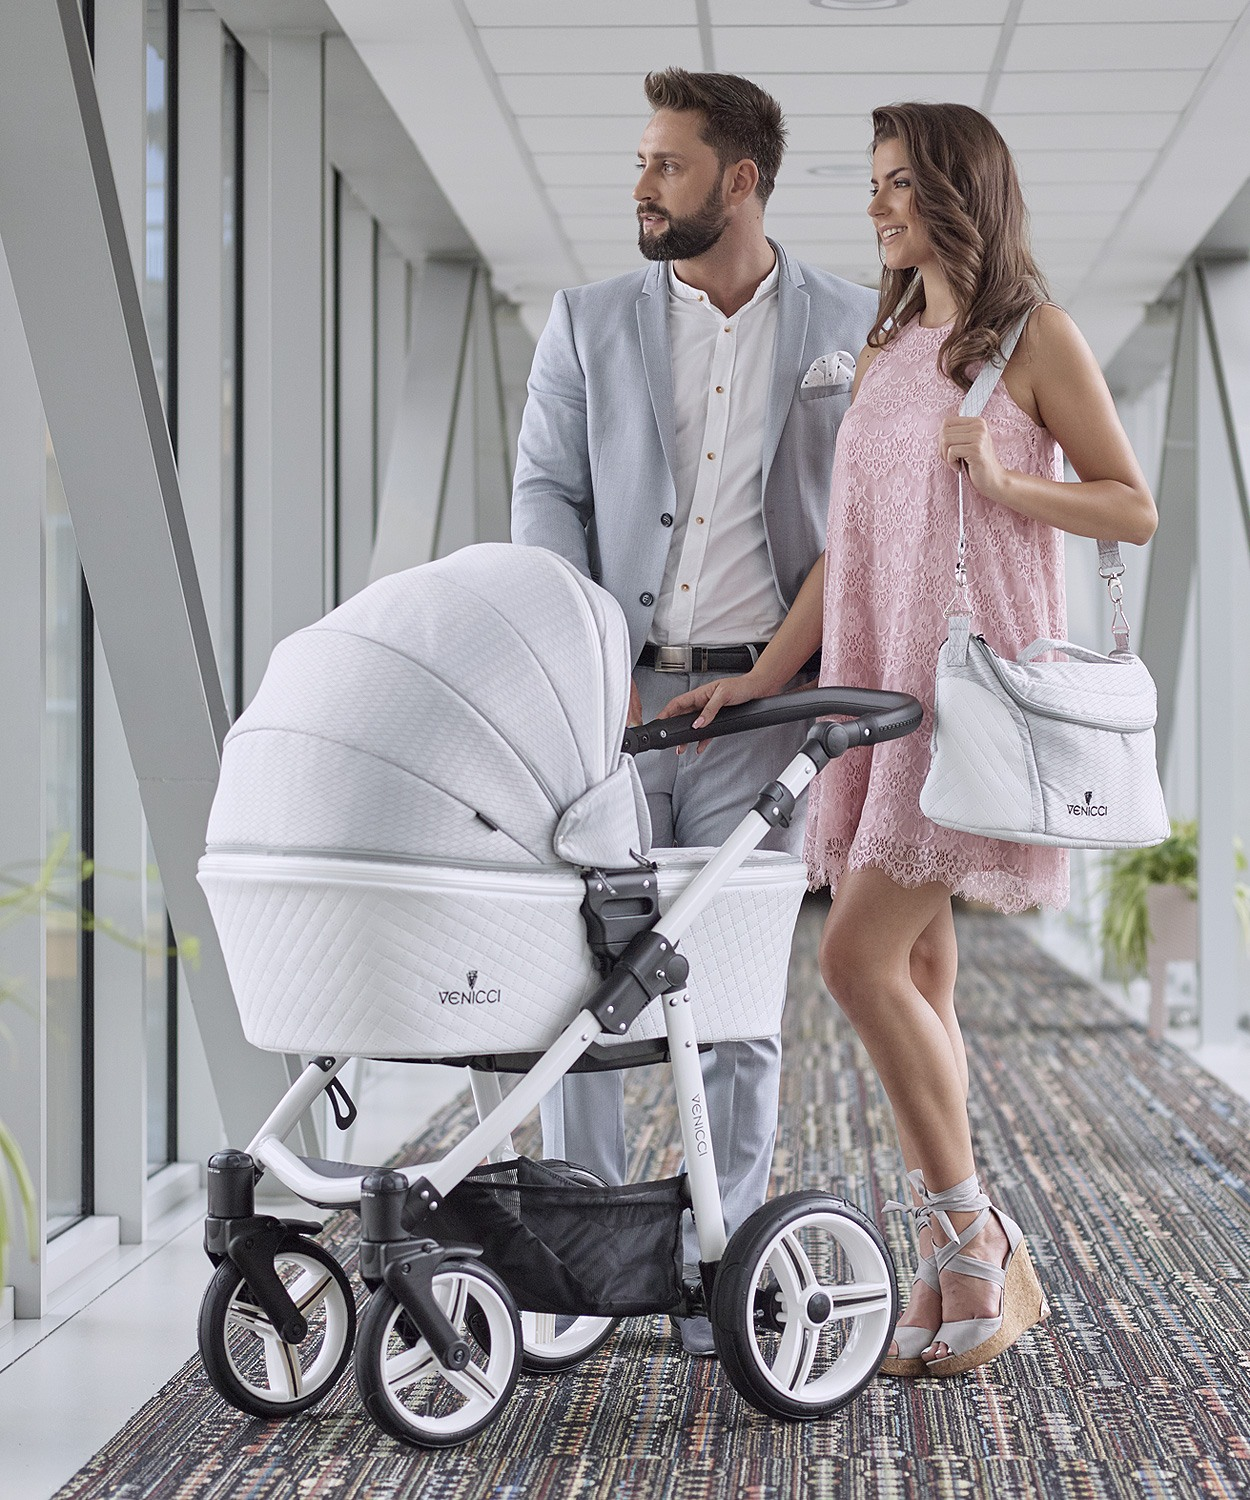 vennici-stroller-pure-stone-grey-session